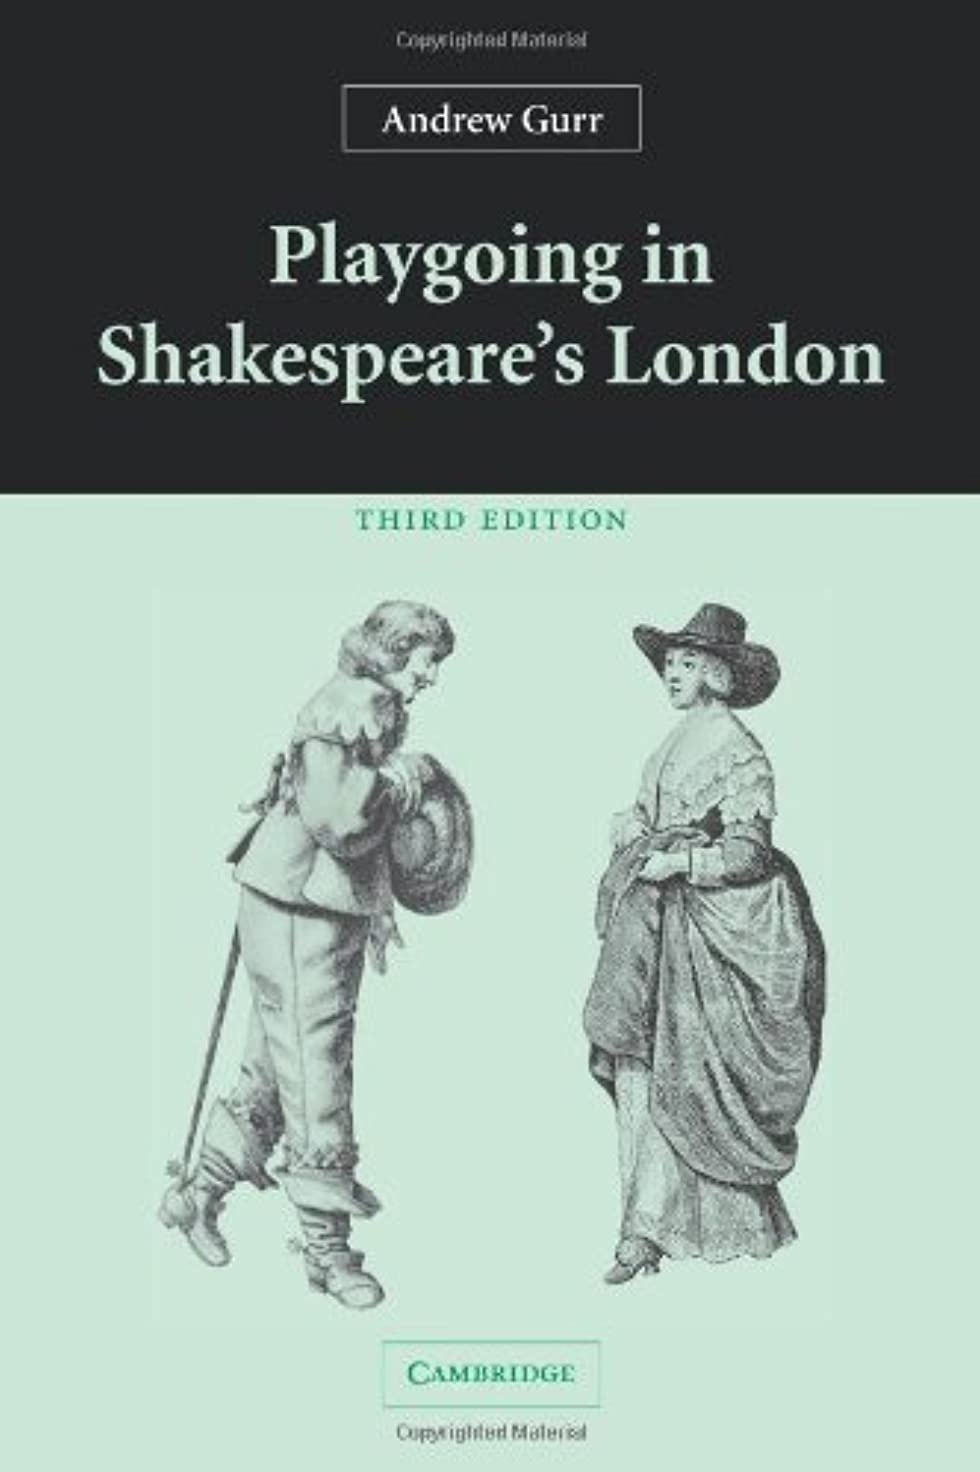 樫の木マーカーアジア人Playgoing in Shakespeare's London